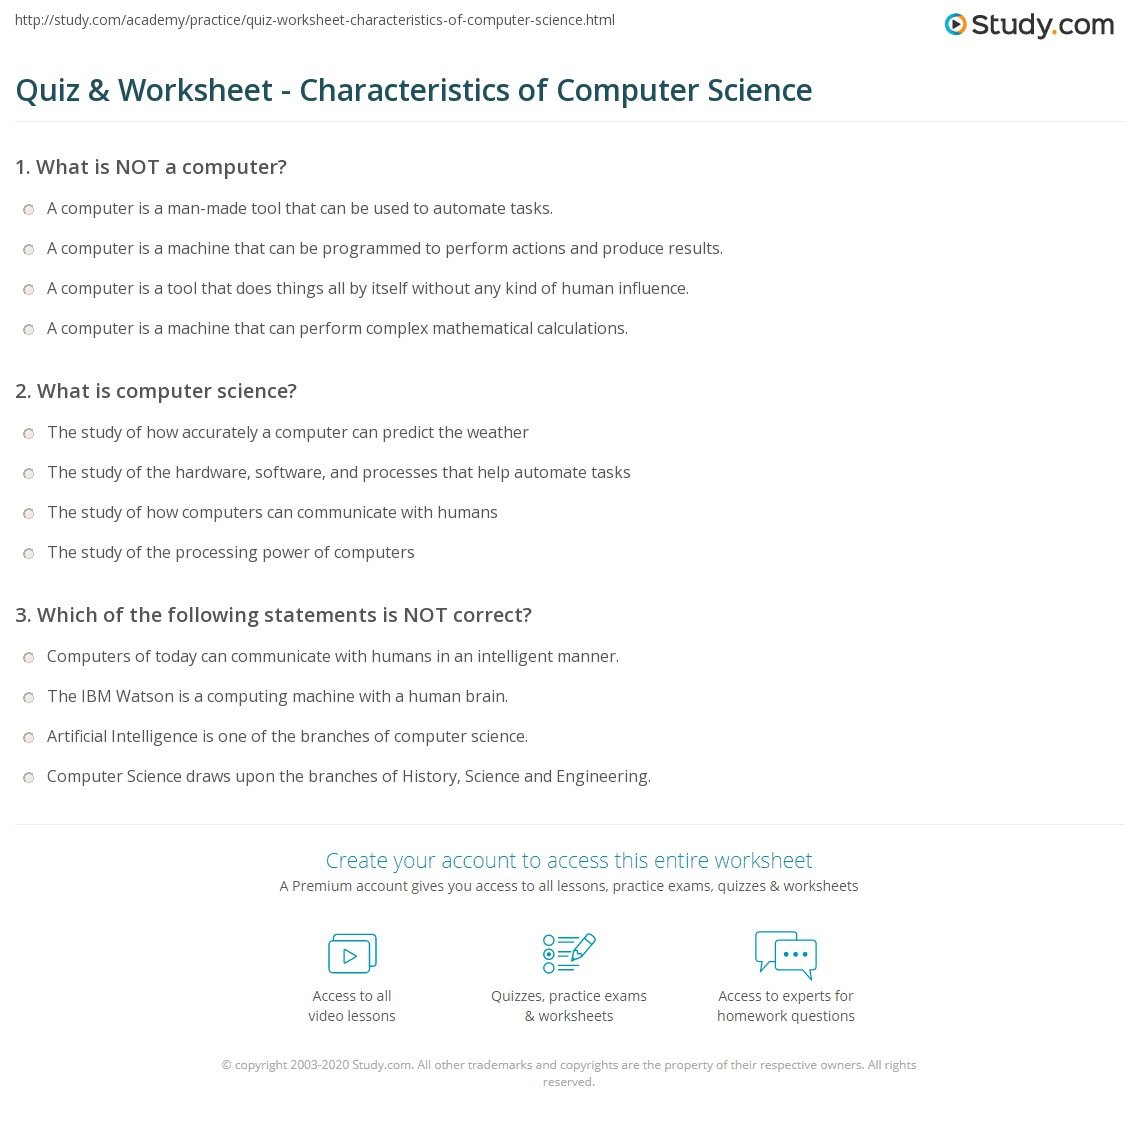 Quiz & Worksheet - Characteristics of Computer Science  Study.com